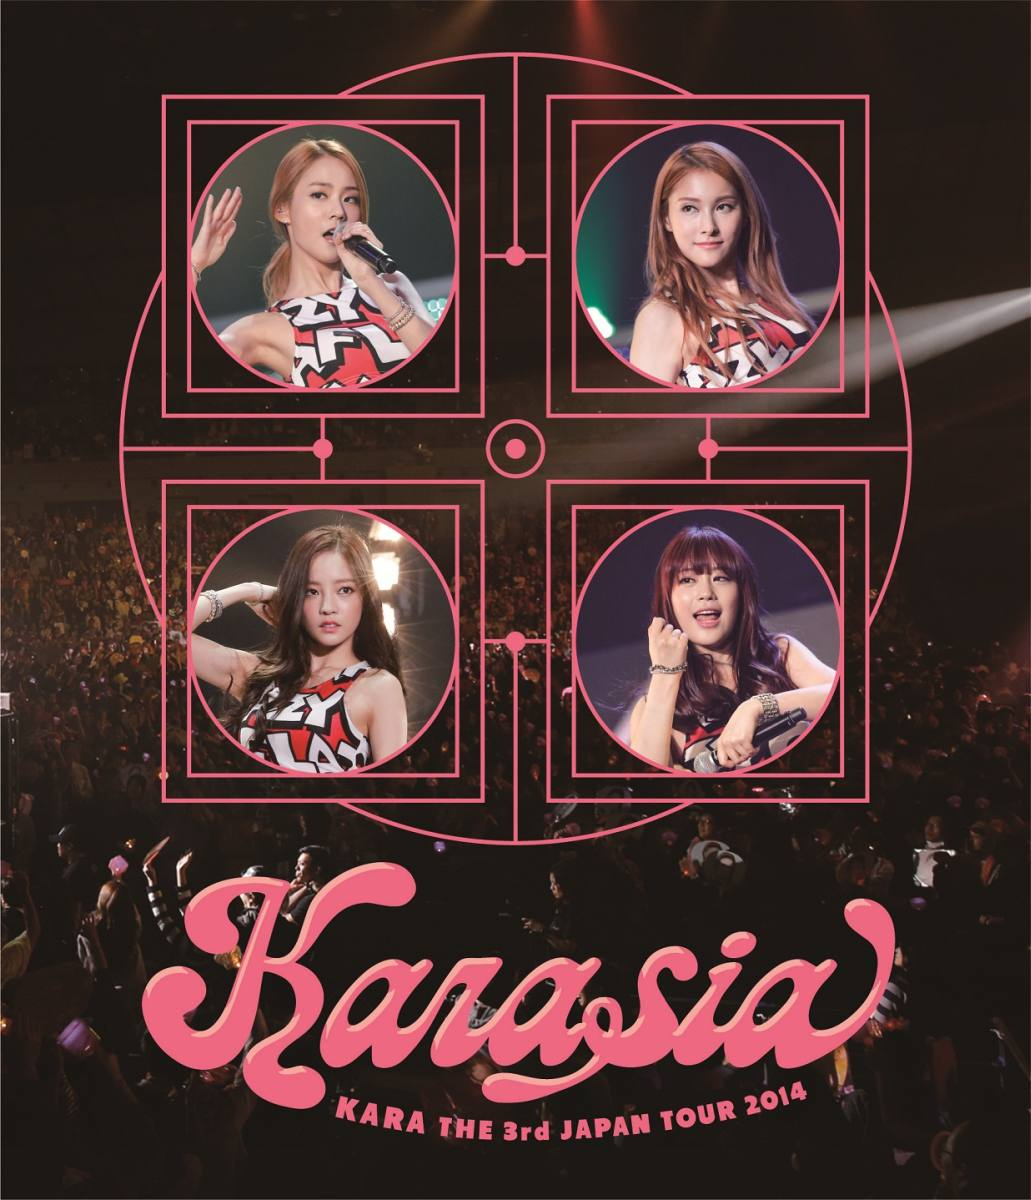 KARA THE 3rd JAPAN TOUR 2014 KARASIA 【初回限定盤】【…...:book:17293984